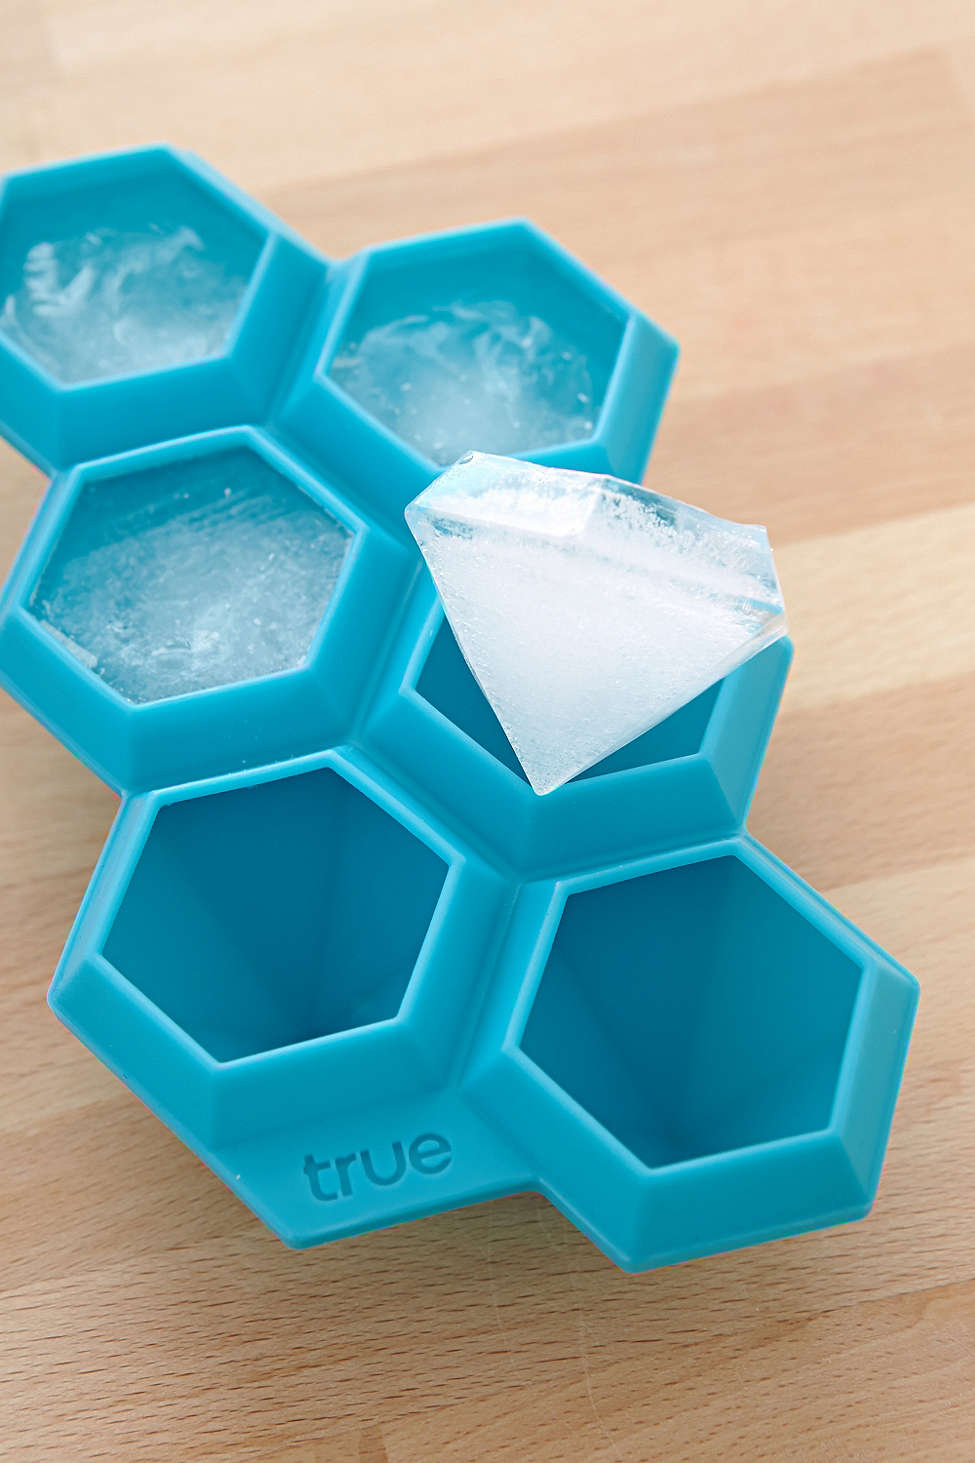 Diamond ice tray from Urban Outfitters